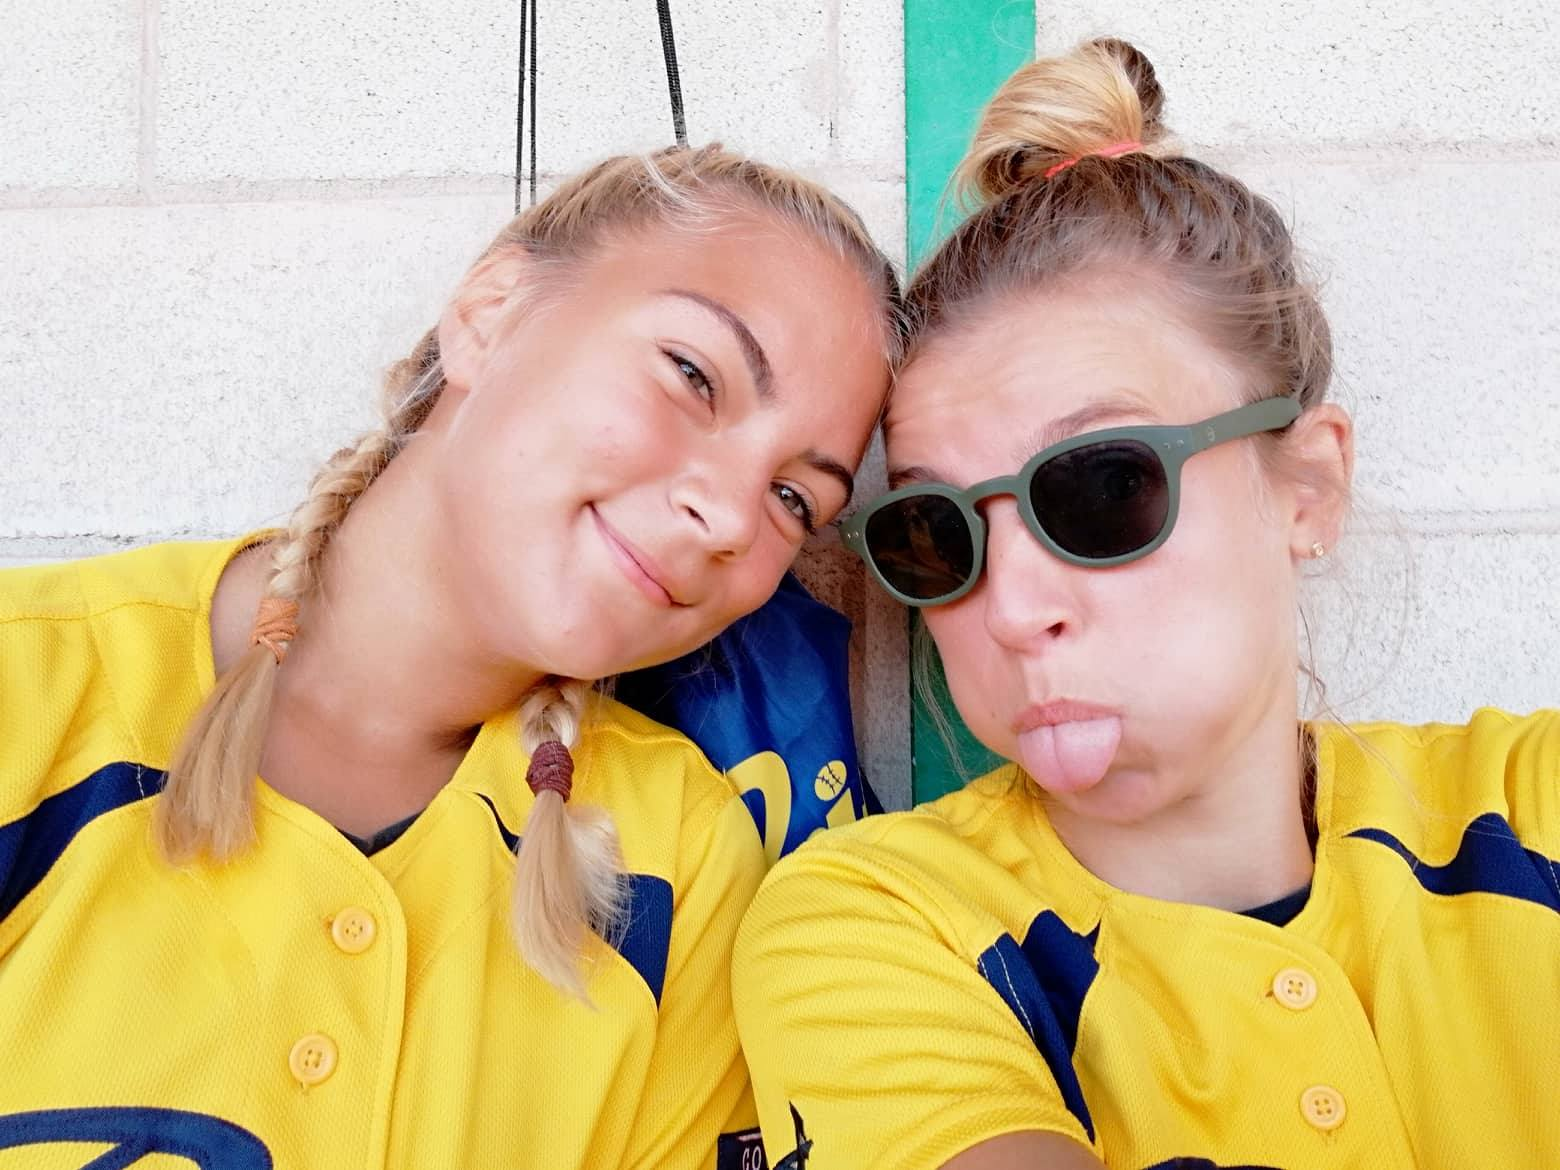 http://softball-princ.hr/wp-content/uploads/język.jpg